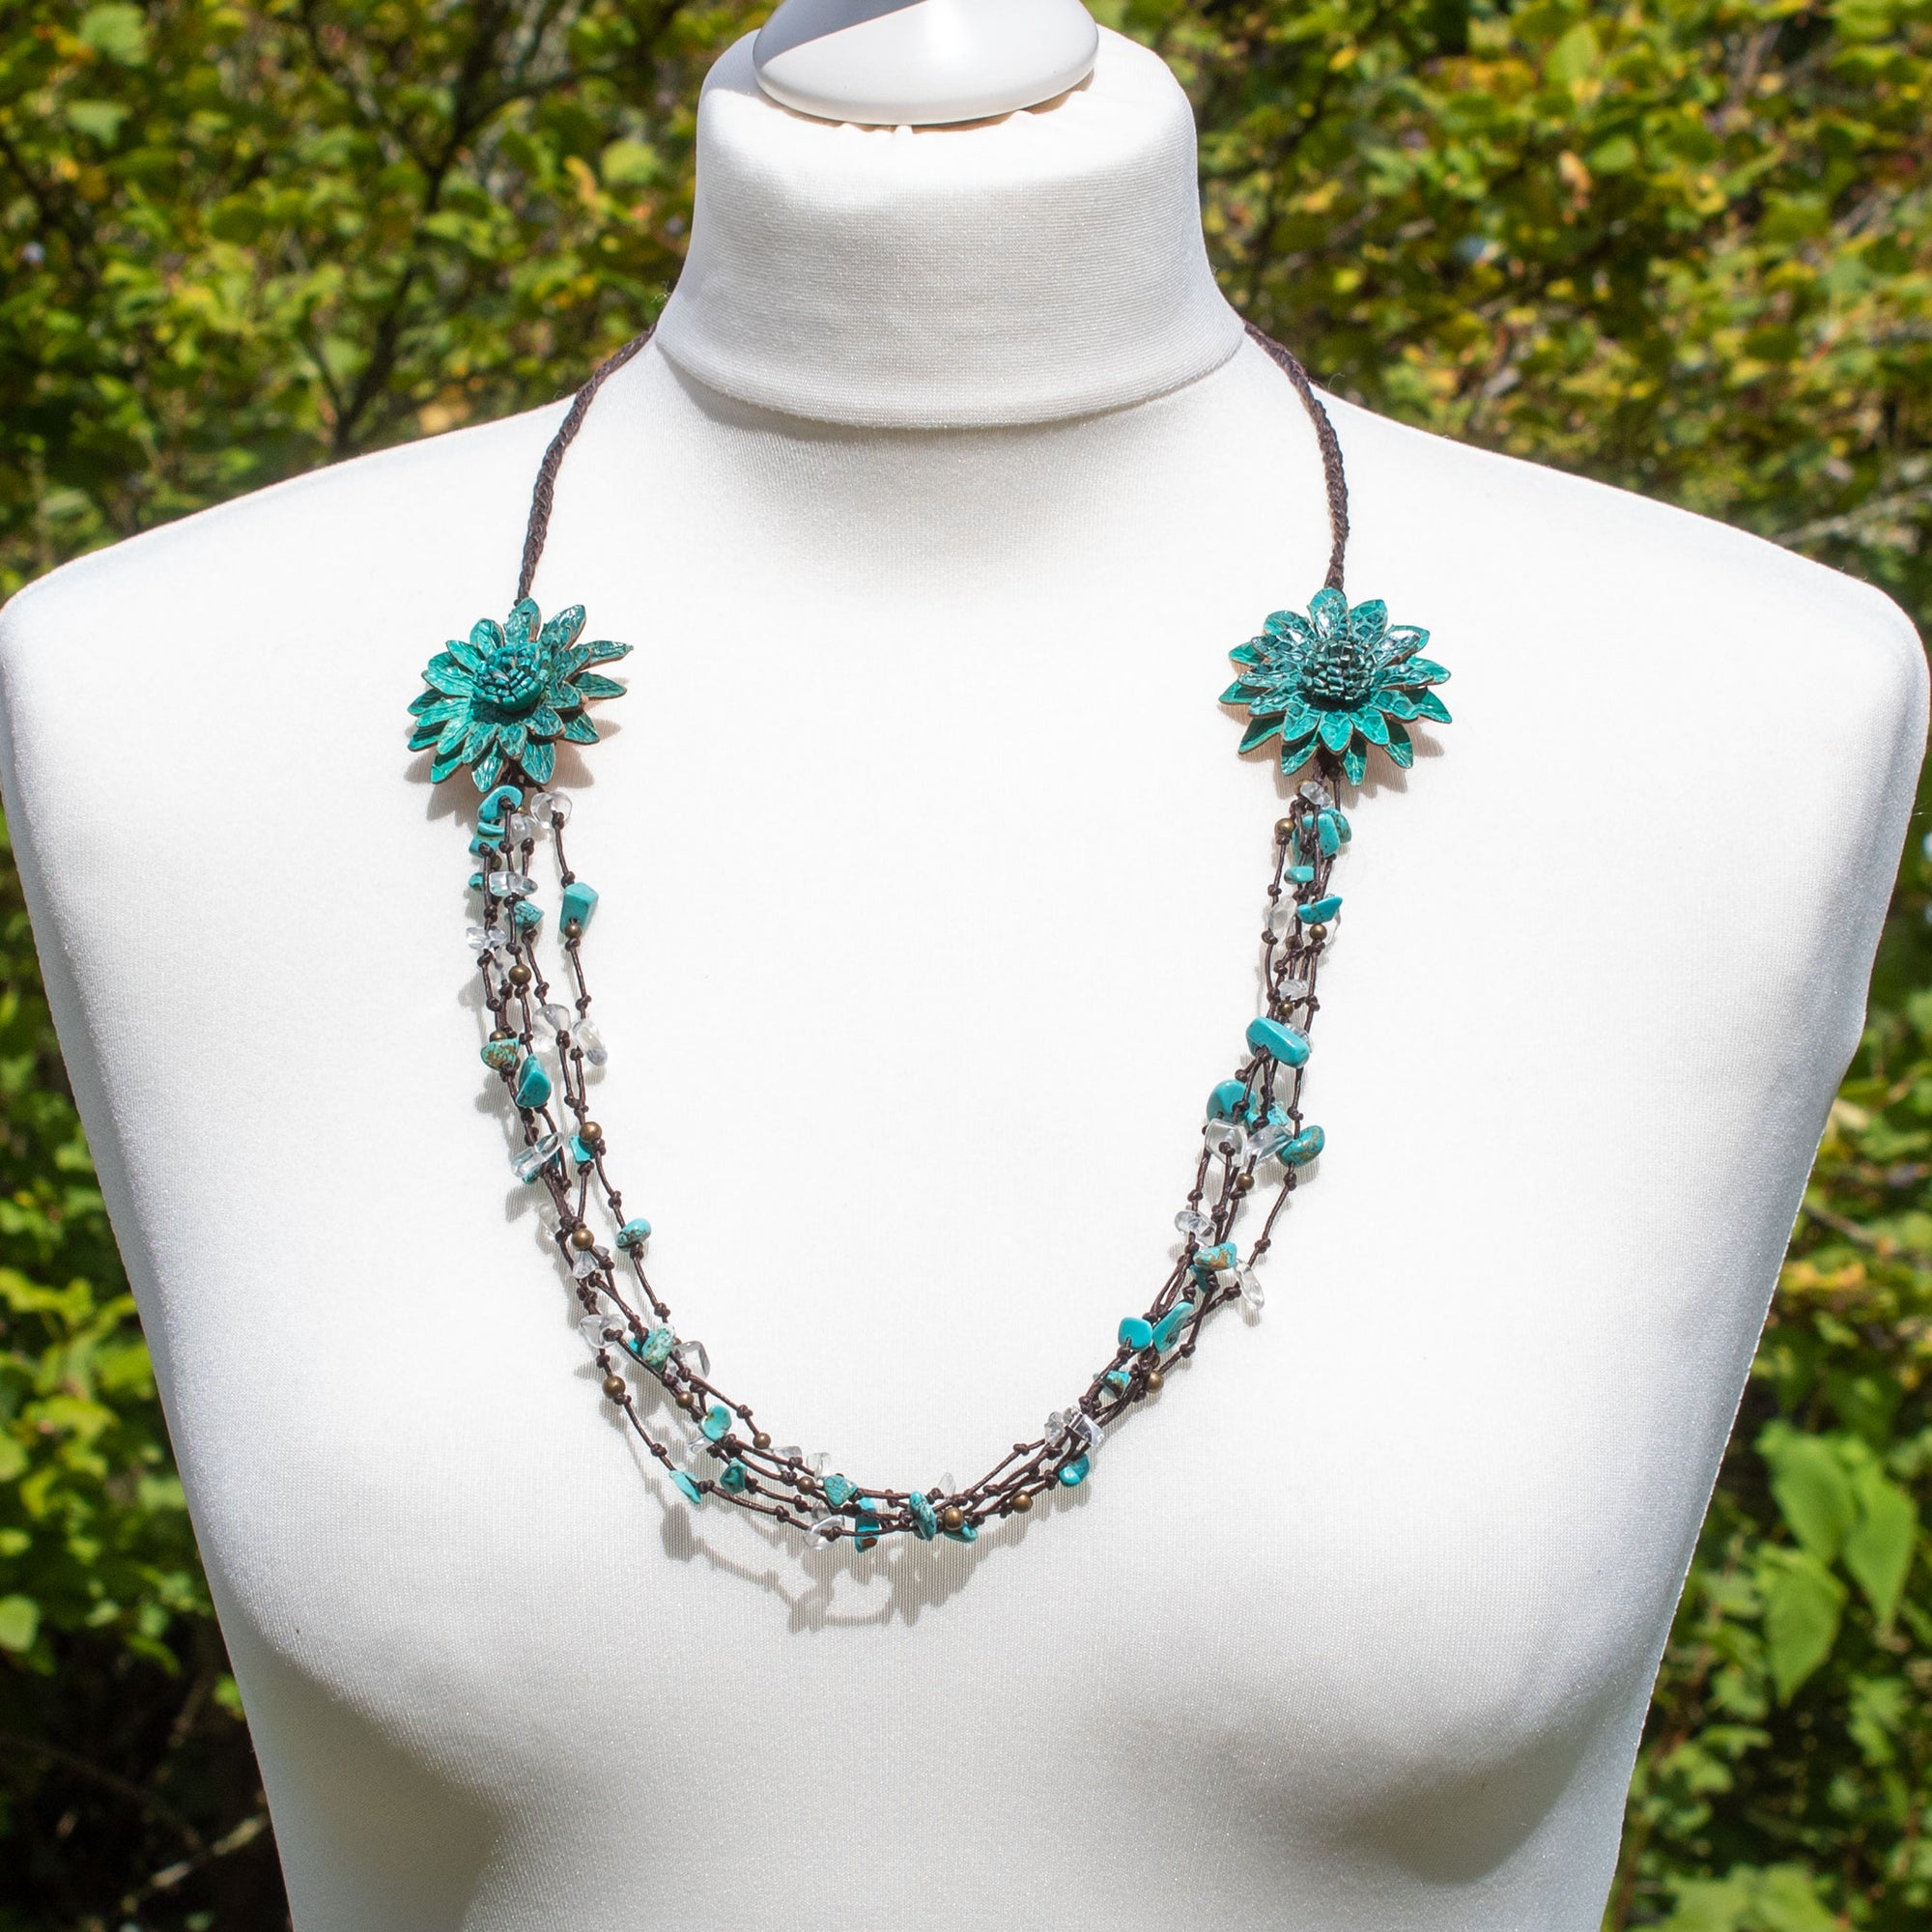 Turquoise Crystal Bead & Leather Flower Necklace | Necklace - The Naughty Shrew